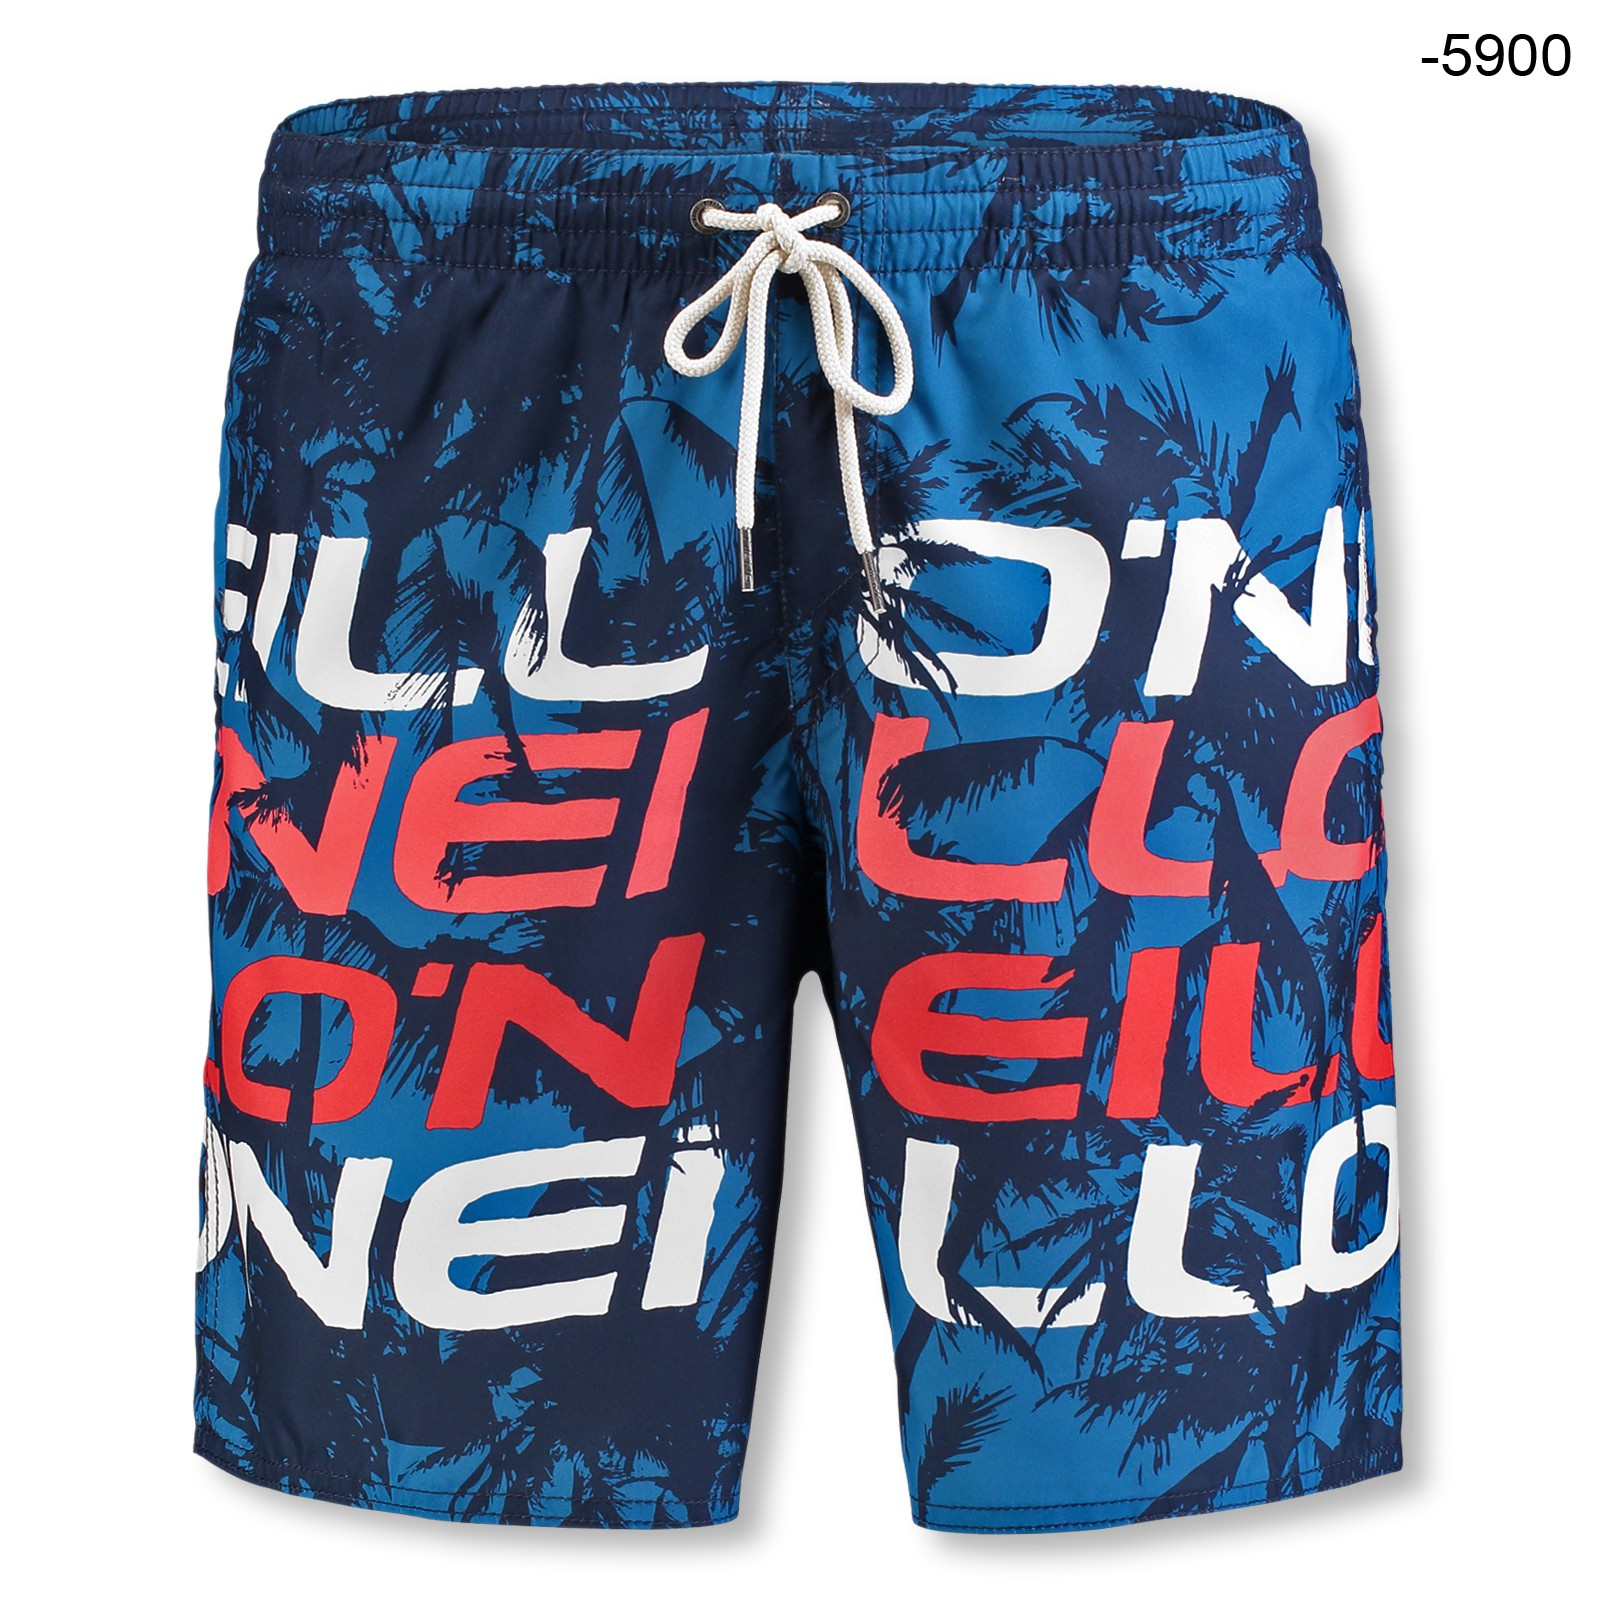 O'Neill Badeshorts Boardshorts PM Stacked 3 Shorts 7A3600 M L XL 2XL in blue